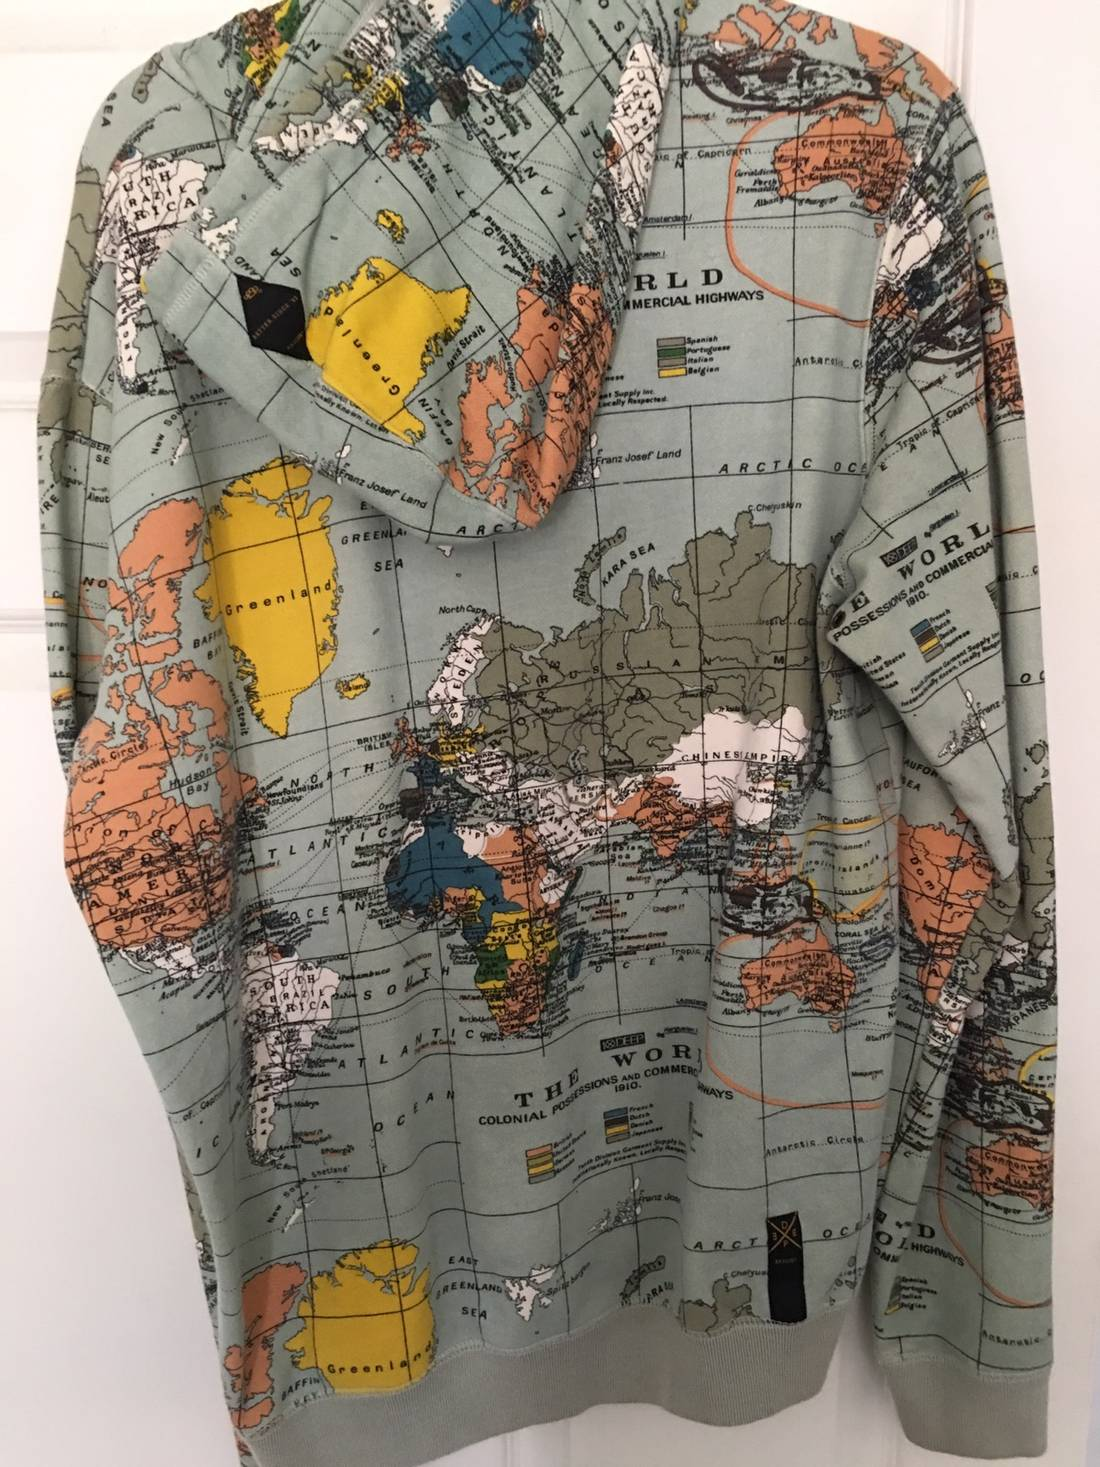 10 deep world map hoodie size l sweatshirts hoodies for sale 10 deep world map hoodie size us l eu 52 54 3 gumiabroncs Image collections